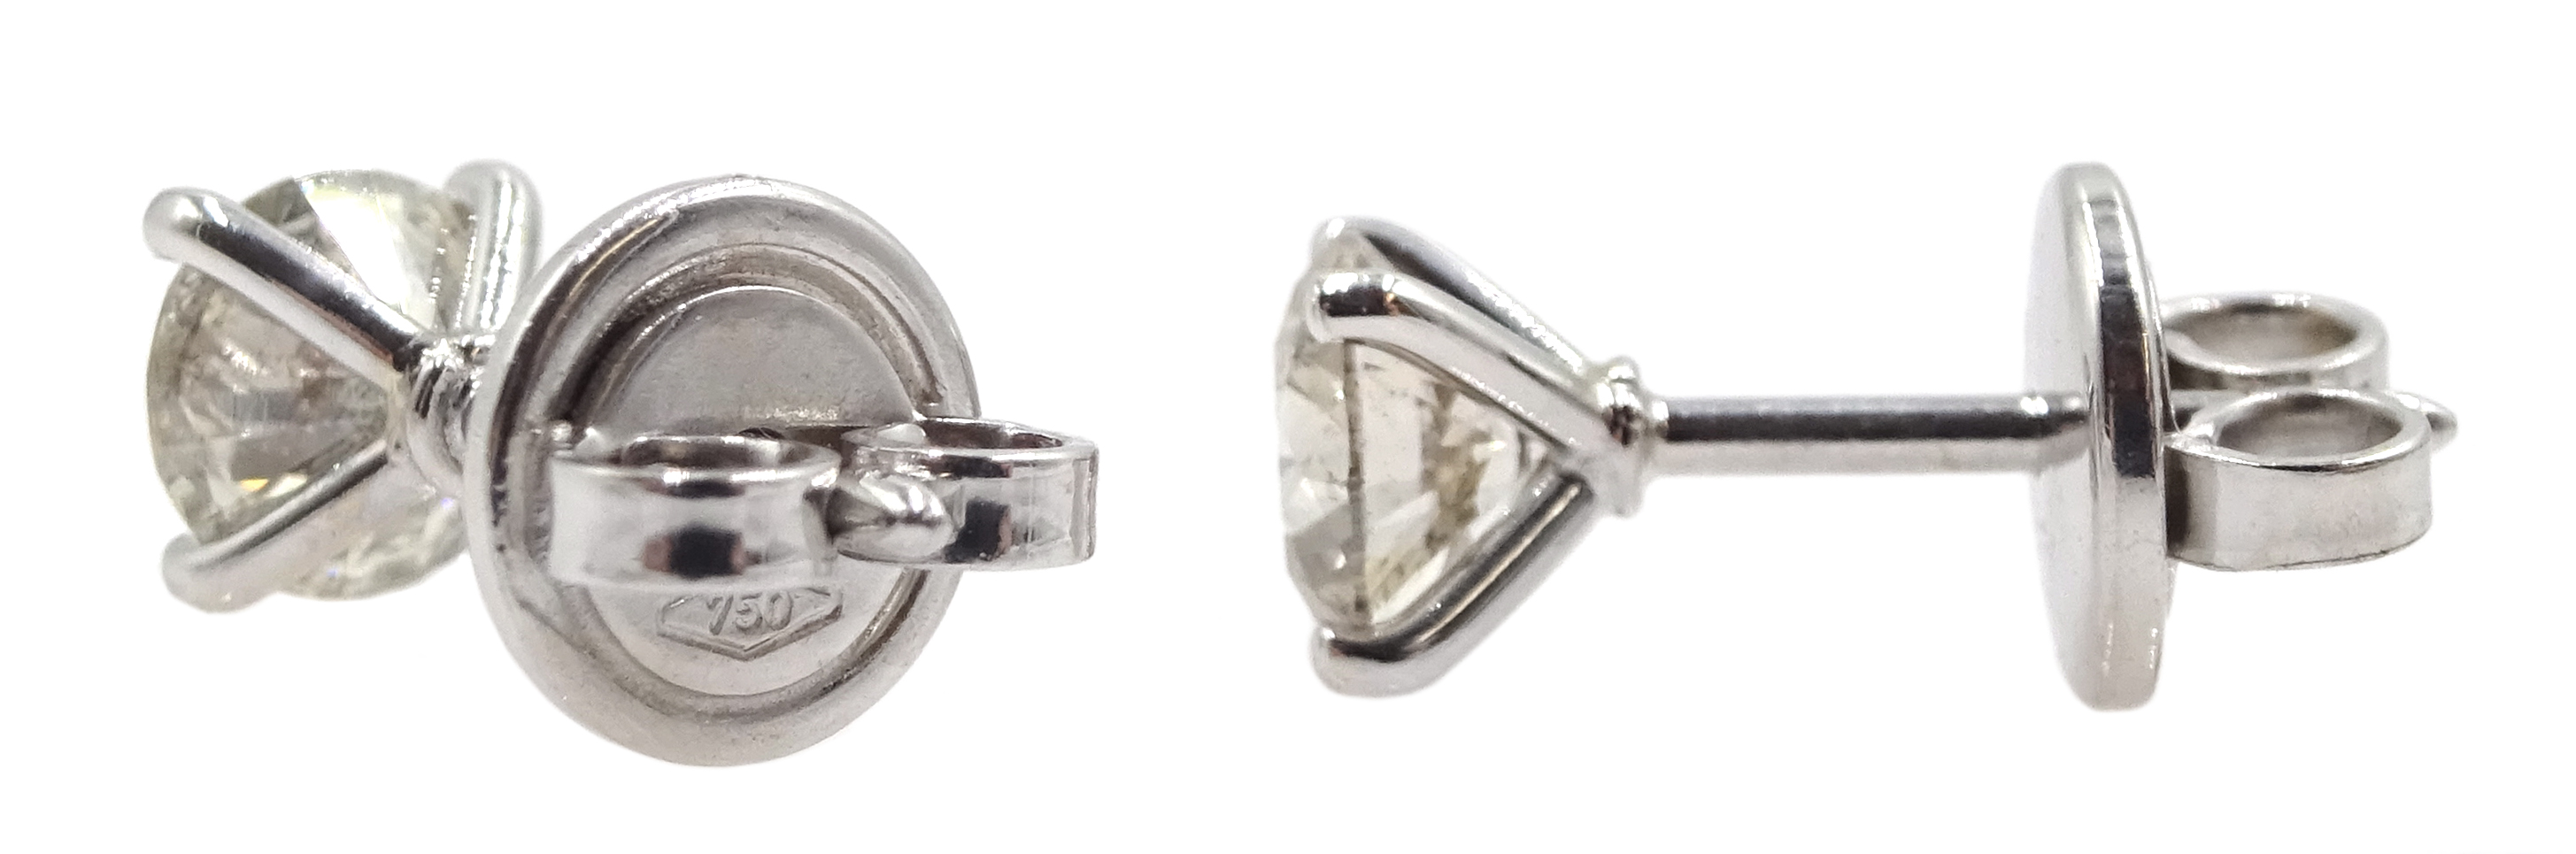 Pair of 18ct white gold brilliant cut diamond stud earrings, stamped 750, total diamond weight - Image 2 of 3